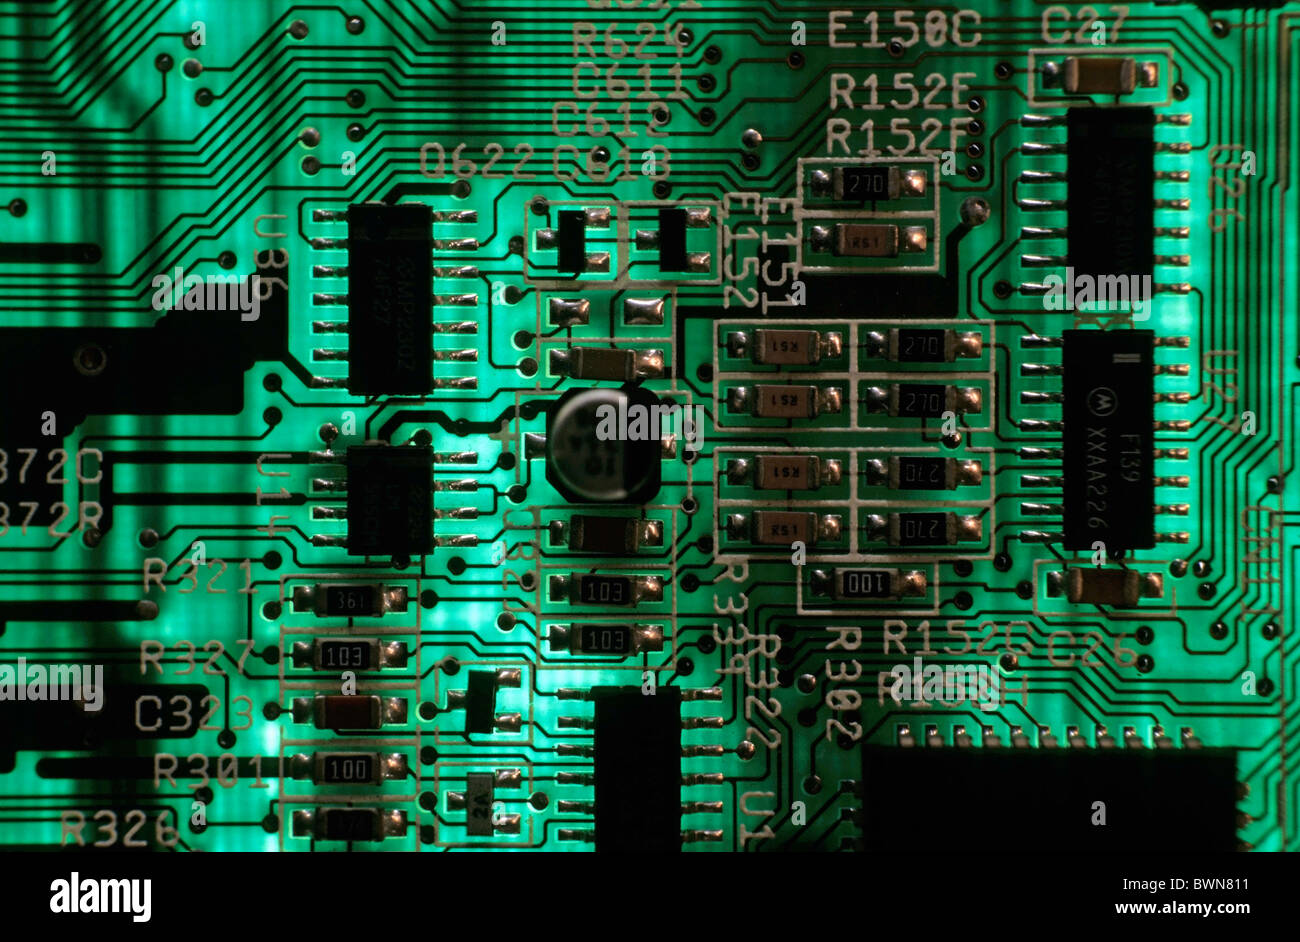 Integrated circuit board from a computer. - Stock Image